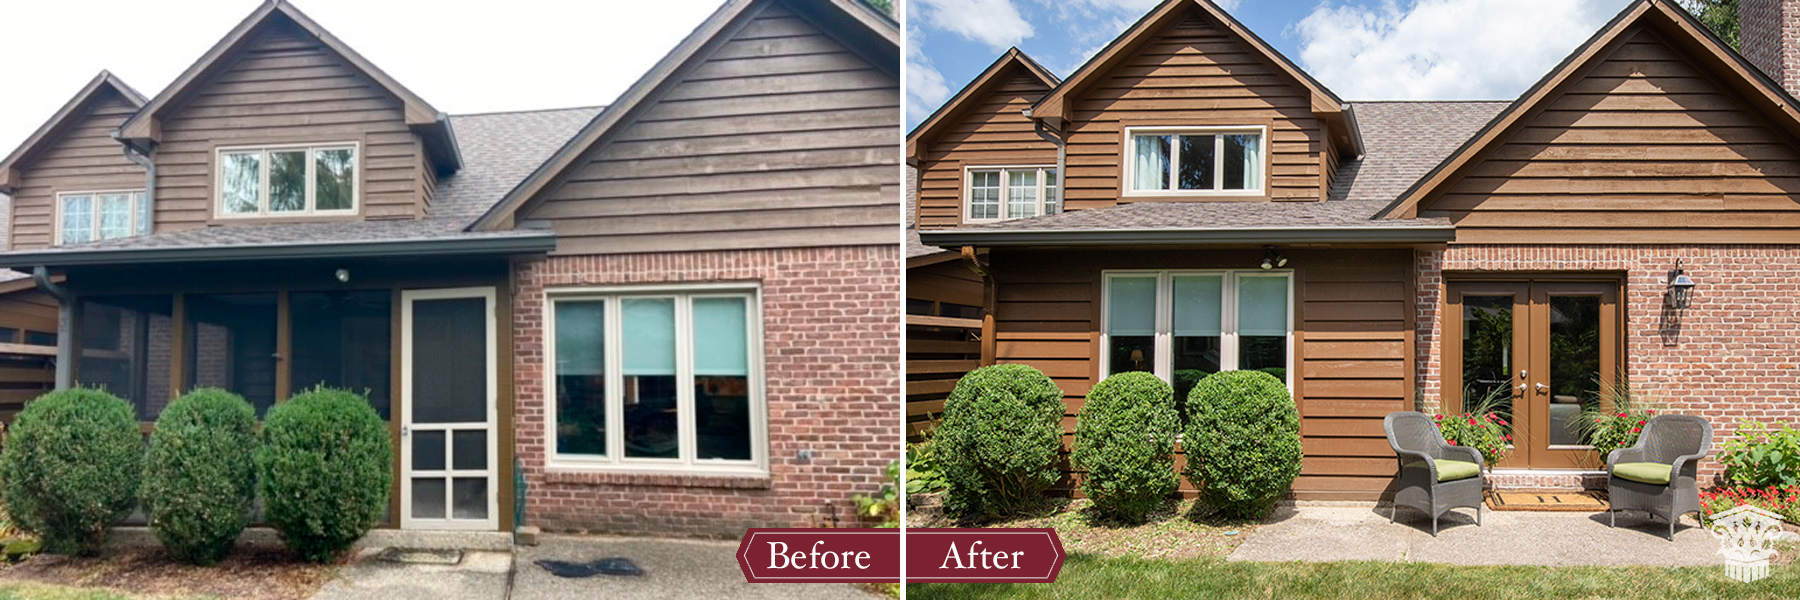 exterior porch to office before and after